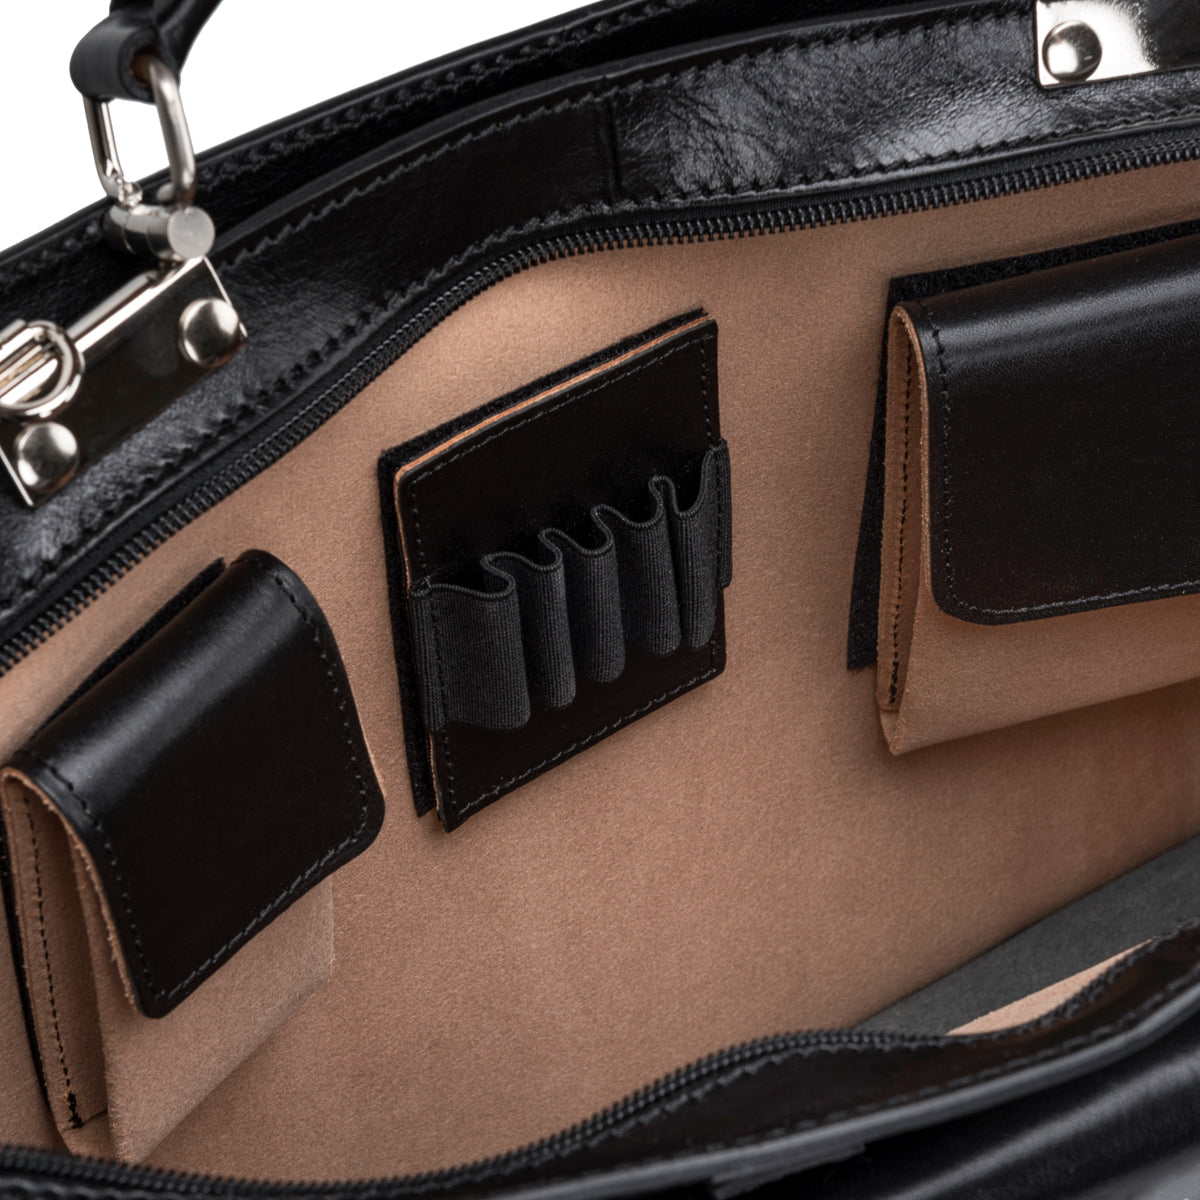 Image 5 of the Alanzo' Black Veg-Tanned Leather Briefcase